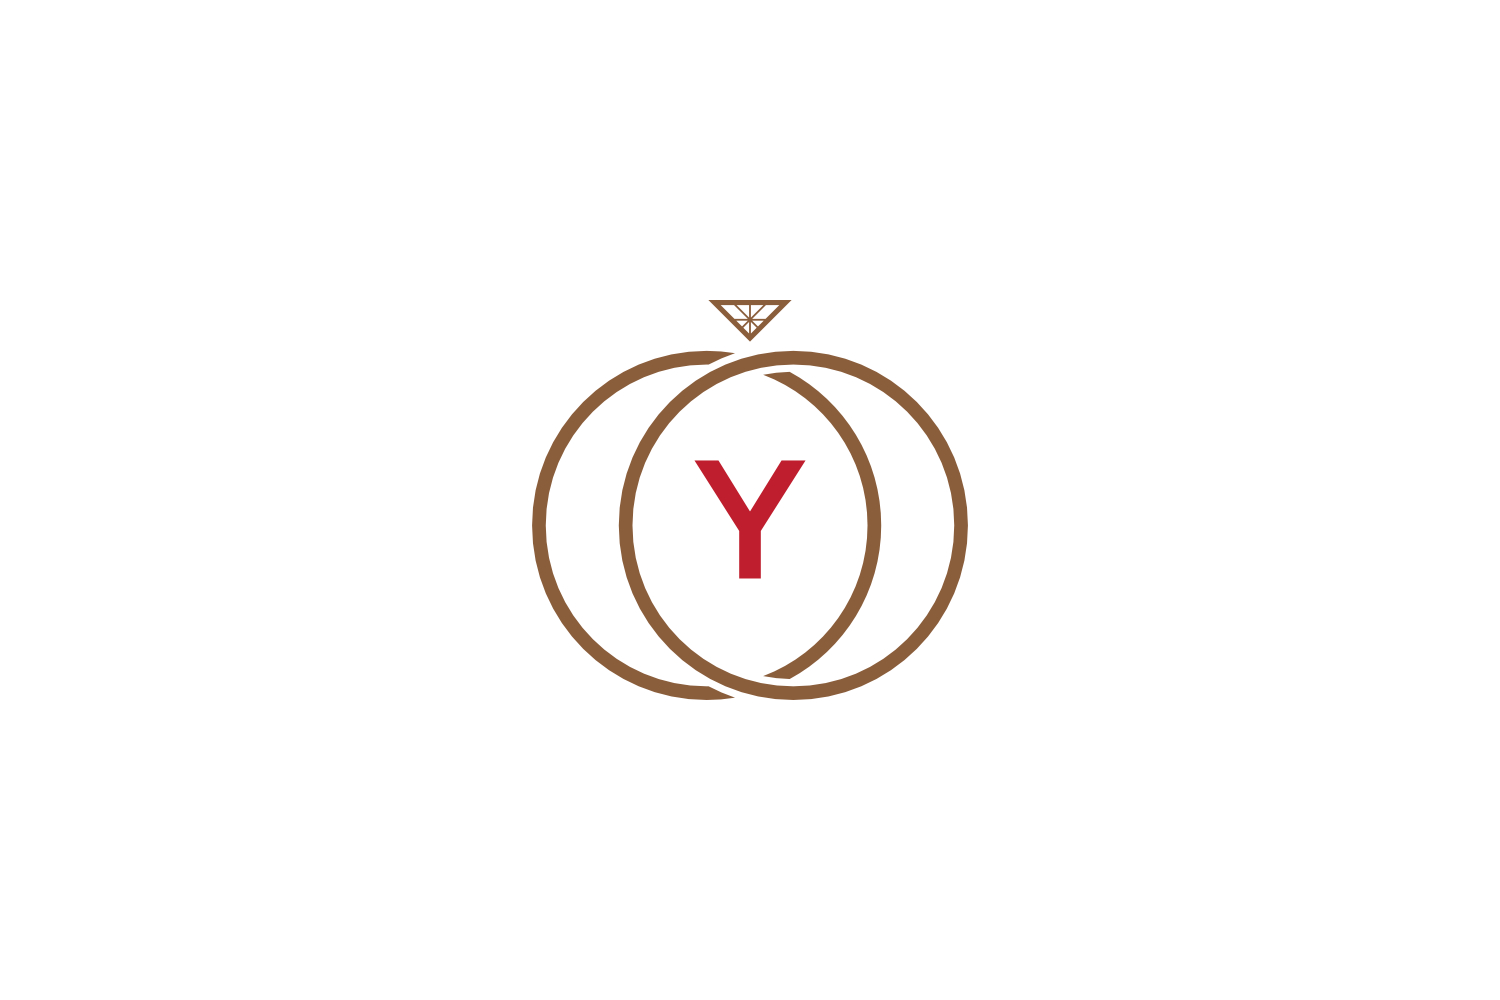 y letter ring diamond logo example image 1